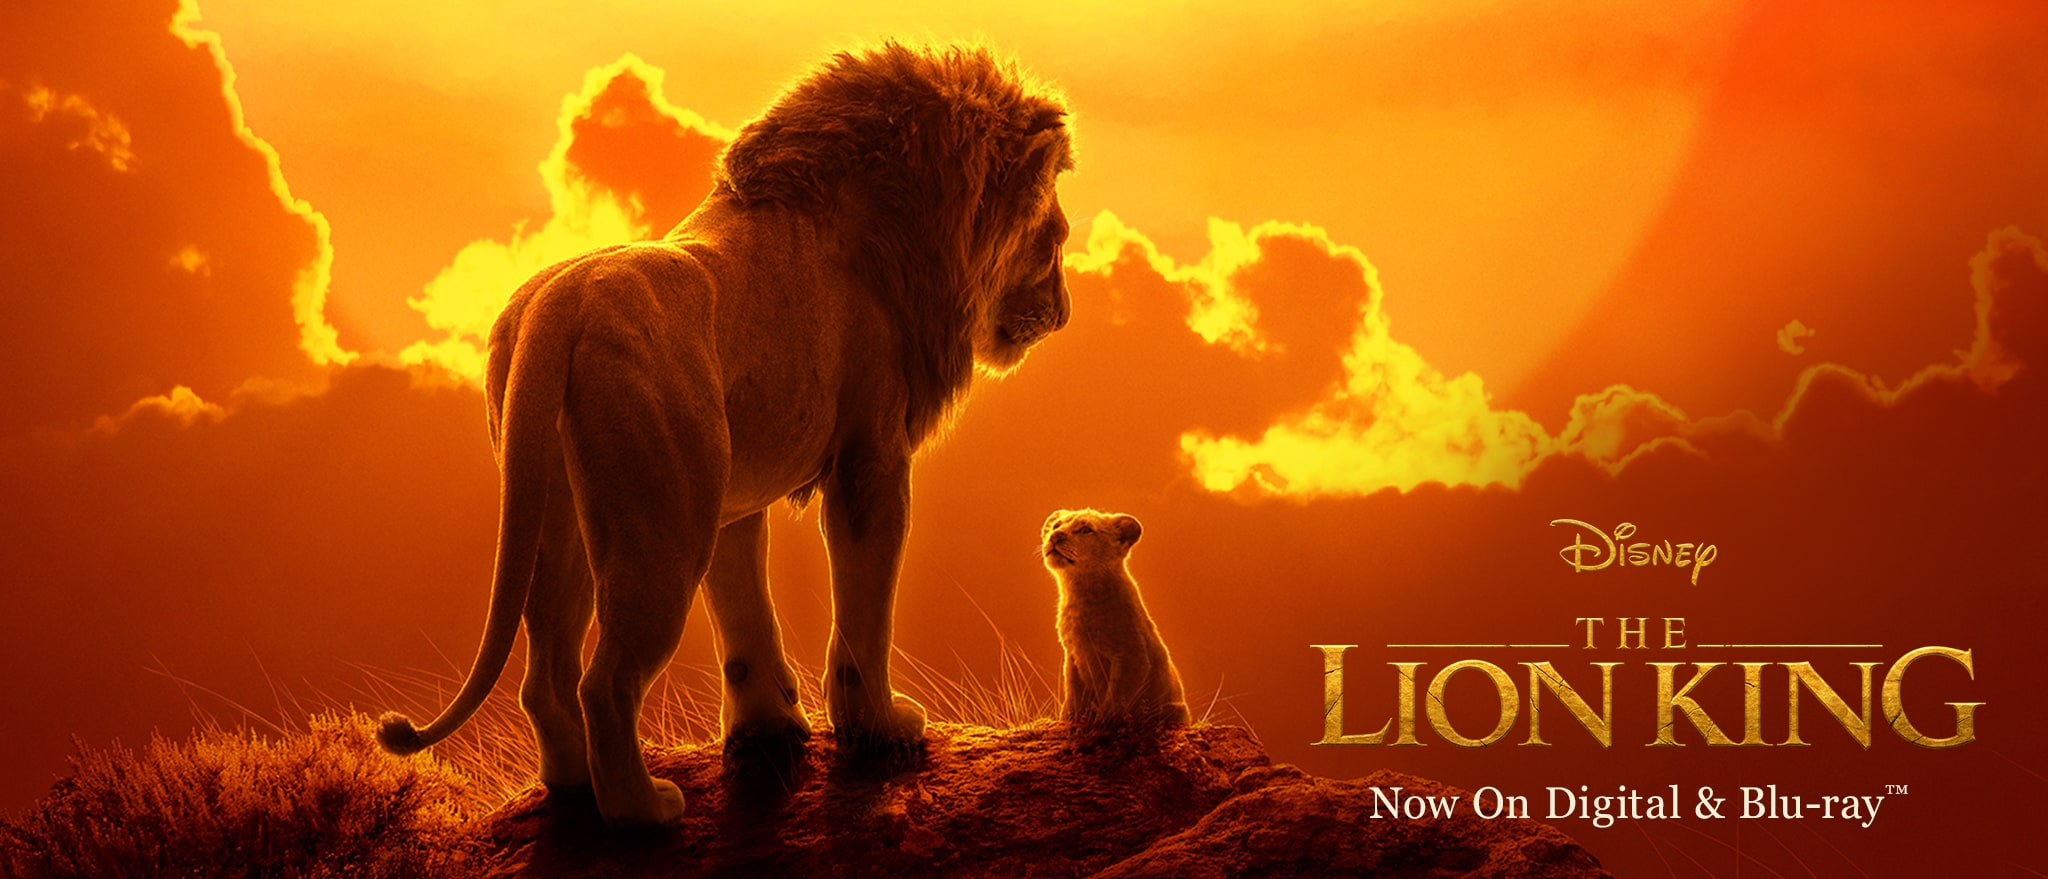 Disney - The Lion King - Now on Digital and Blu-ray.